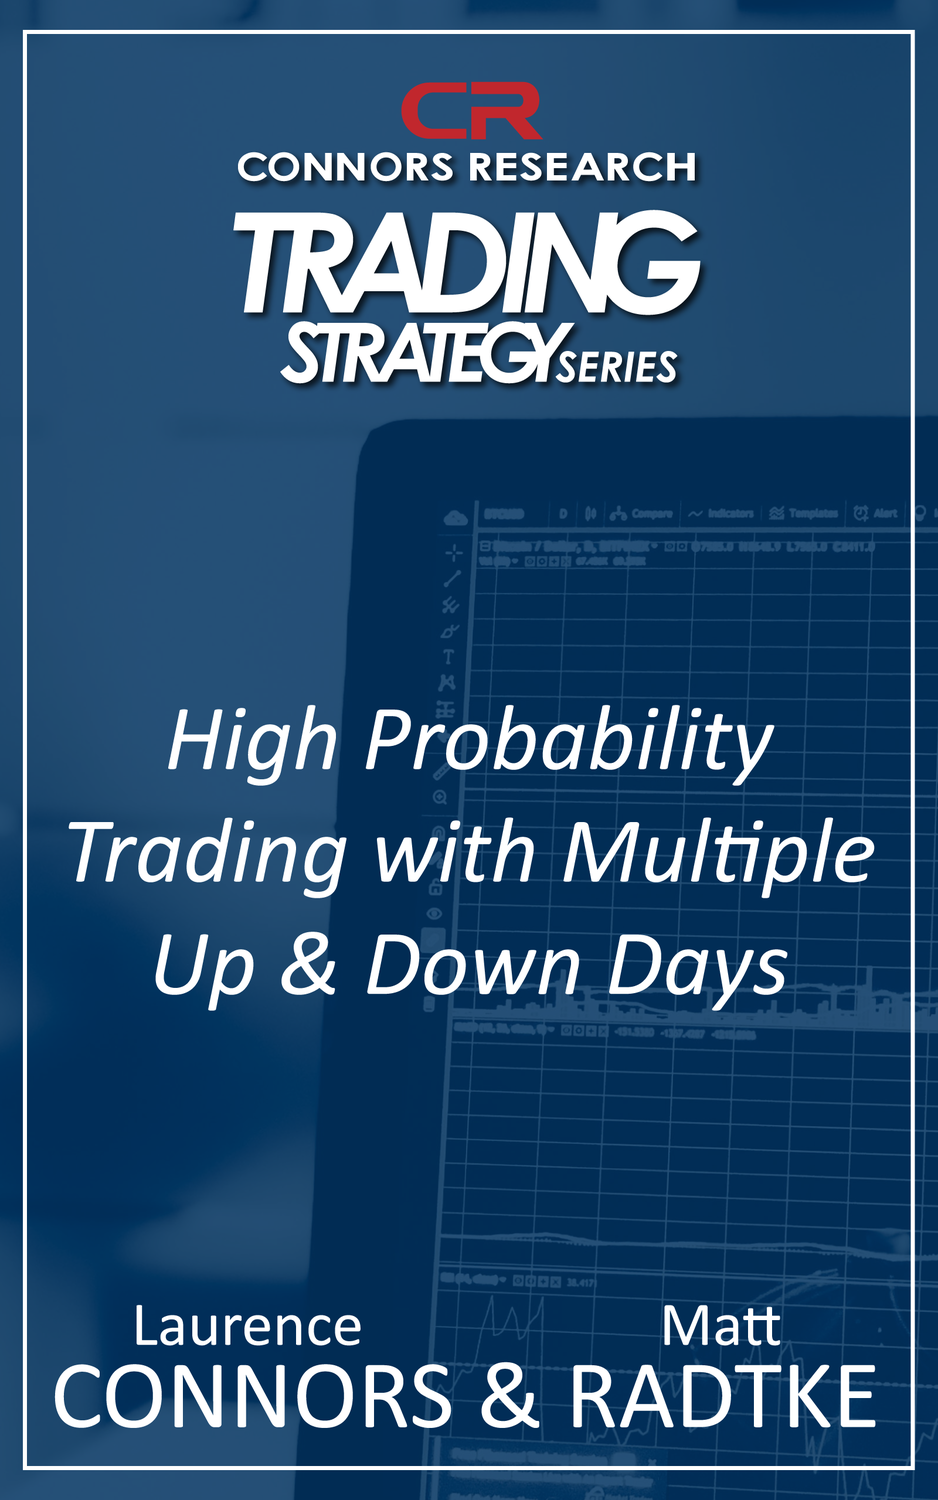 Connors Research Trading Strategy Series: High Probability Trading With Multiple Up and Down Days Strategy